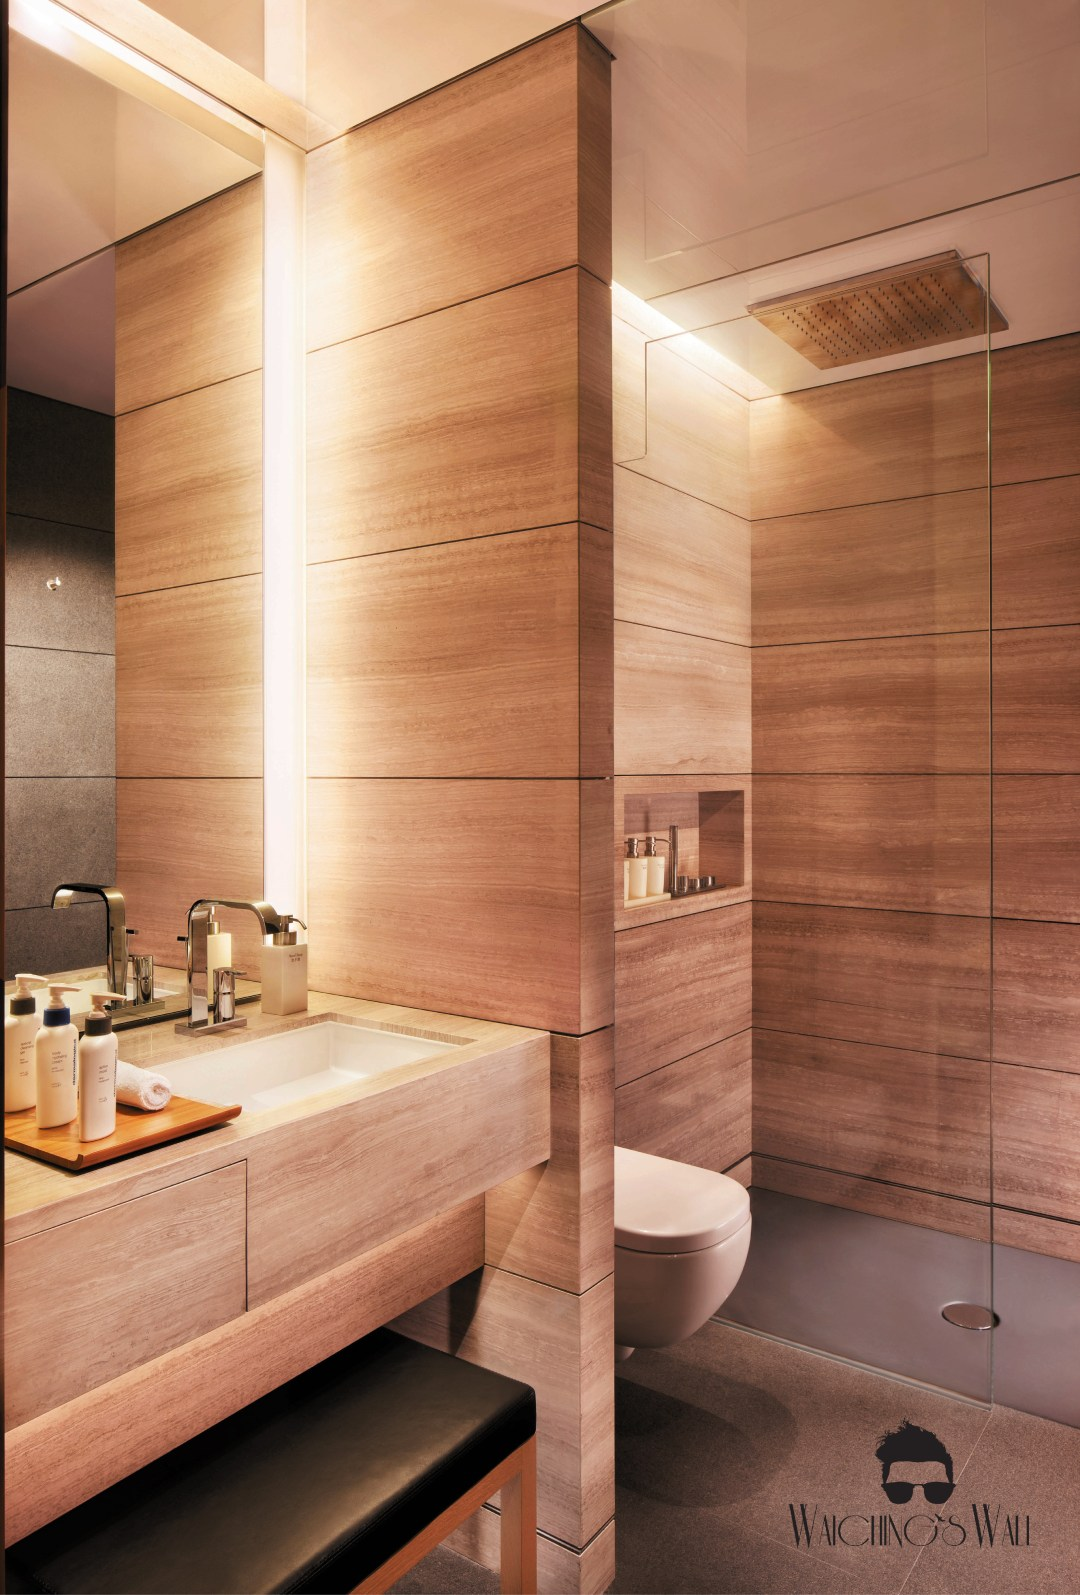 Cathay Pacific Airways_Travel Blogger_Vancouver Dubai_Waichings Wall_Shower Suites-01